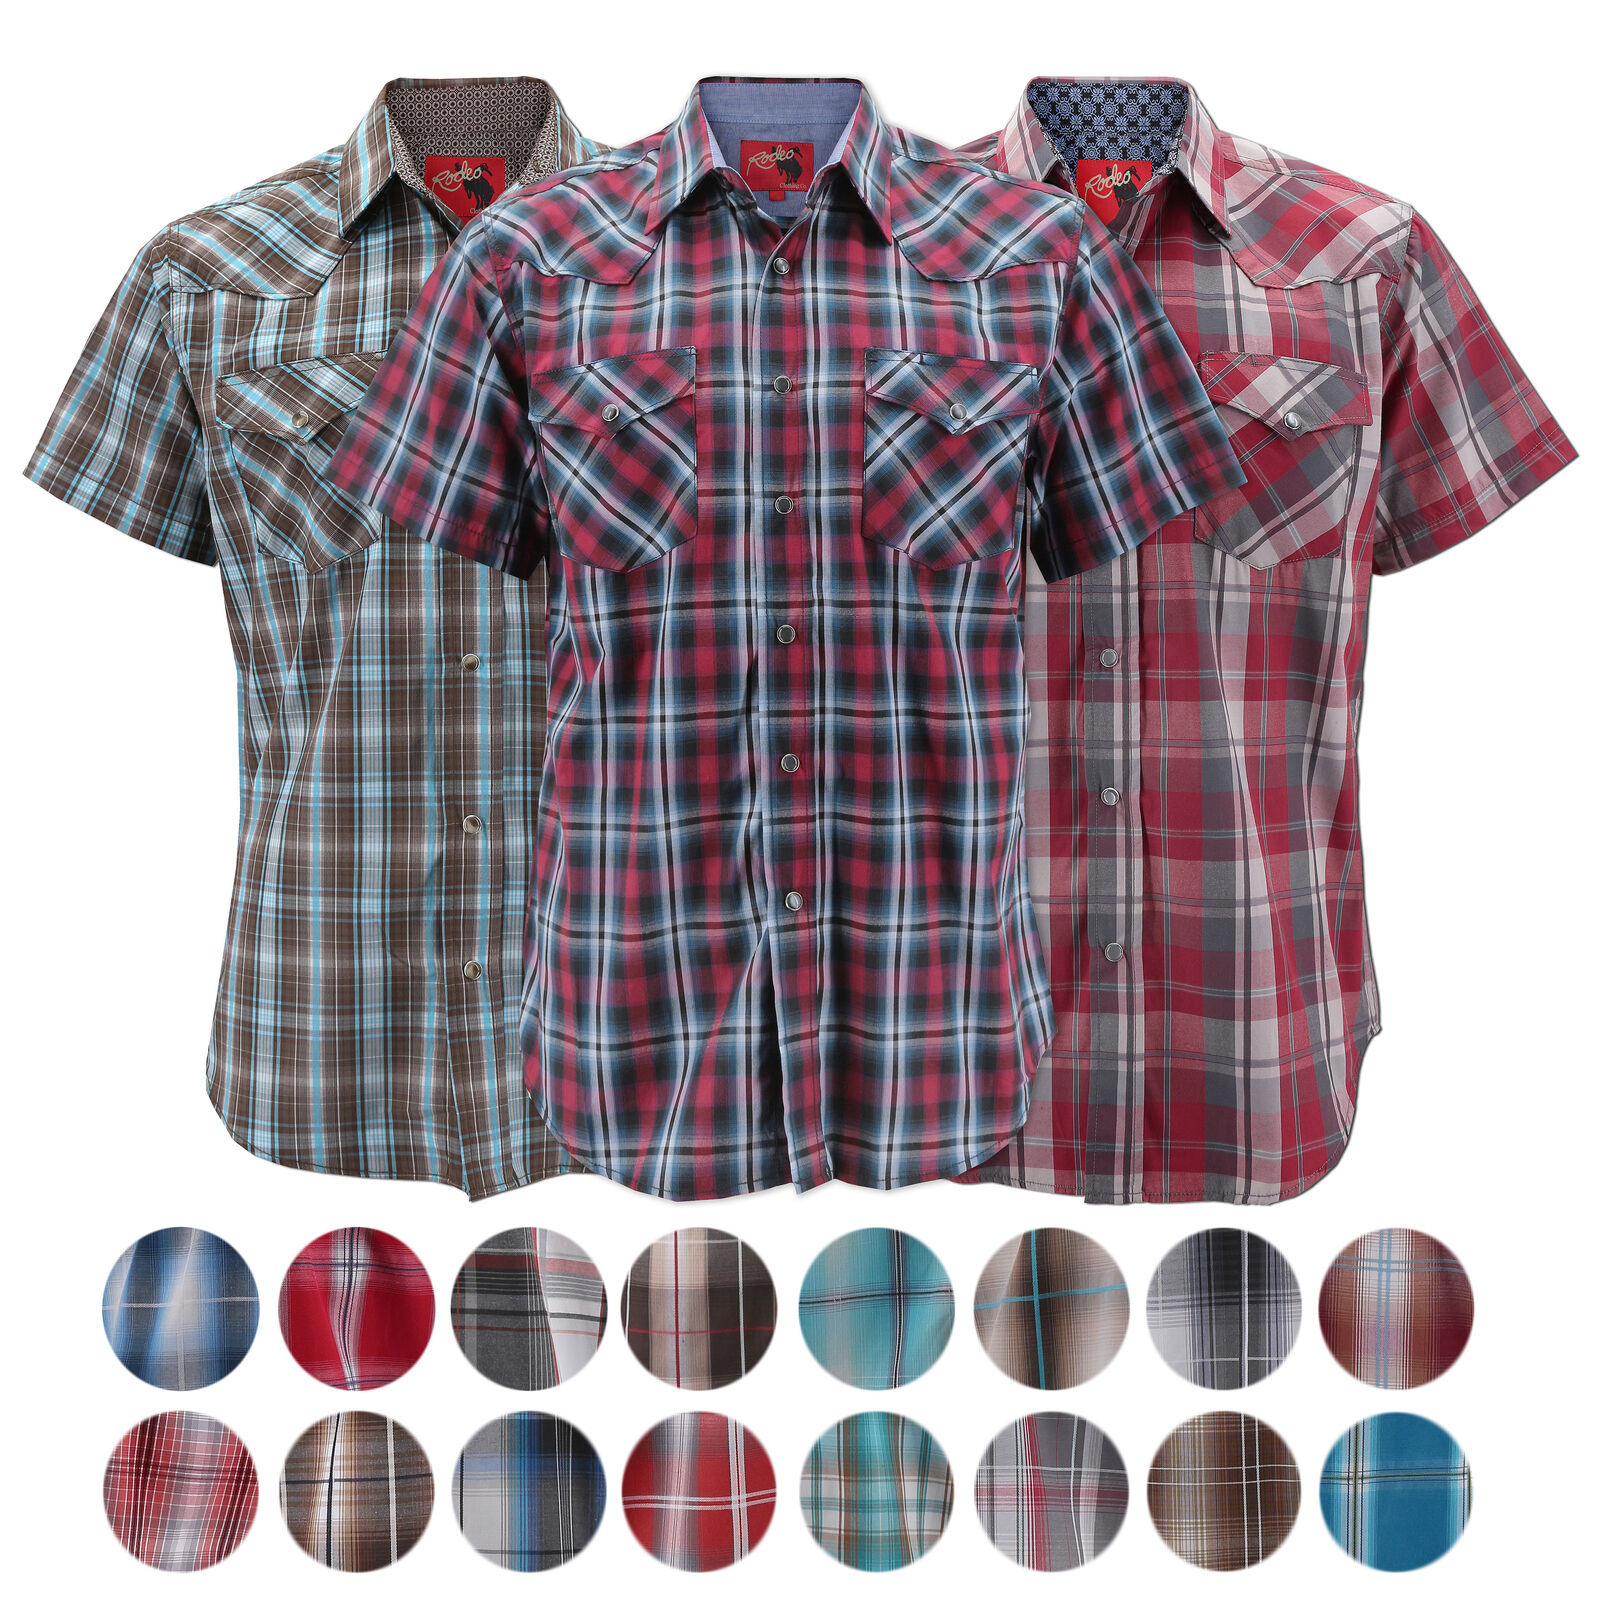 Rodeo Clothing Men's Western Pearl Snap Button Short Sleeve Casual Dress Shirt